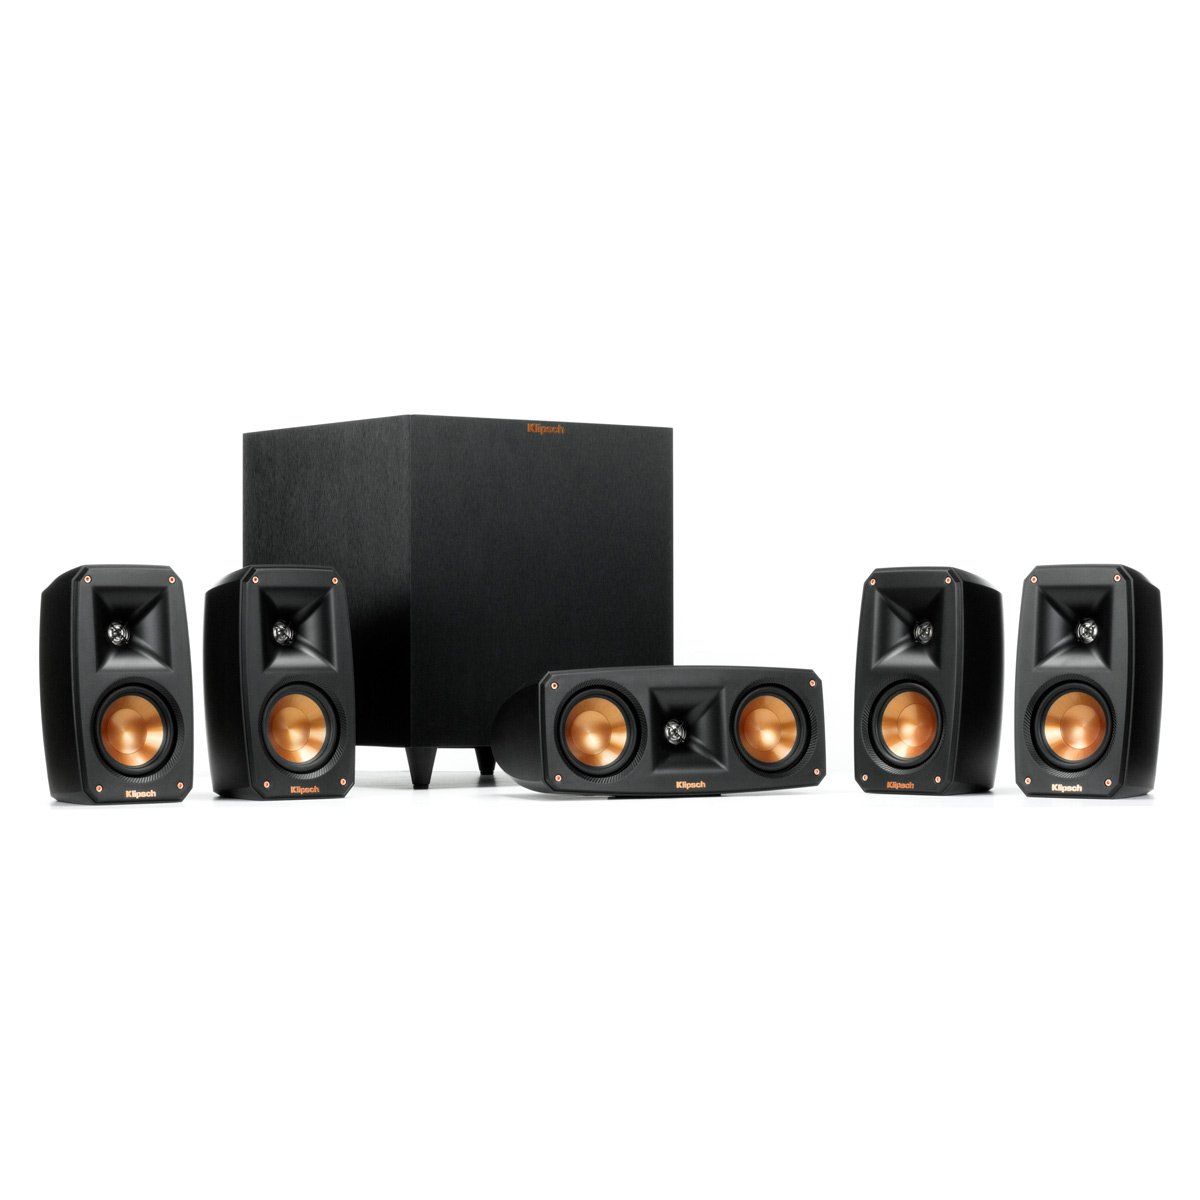 Klipsch Black Reference Theater Pack 5.1 Surround Sound System by Klipsch